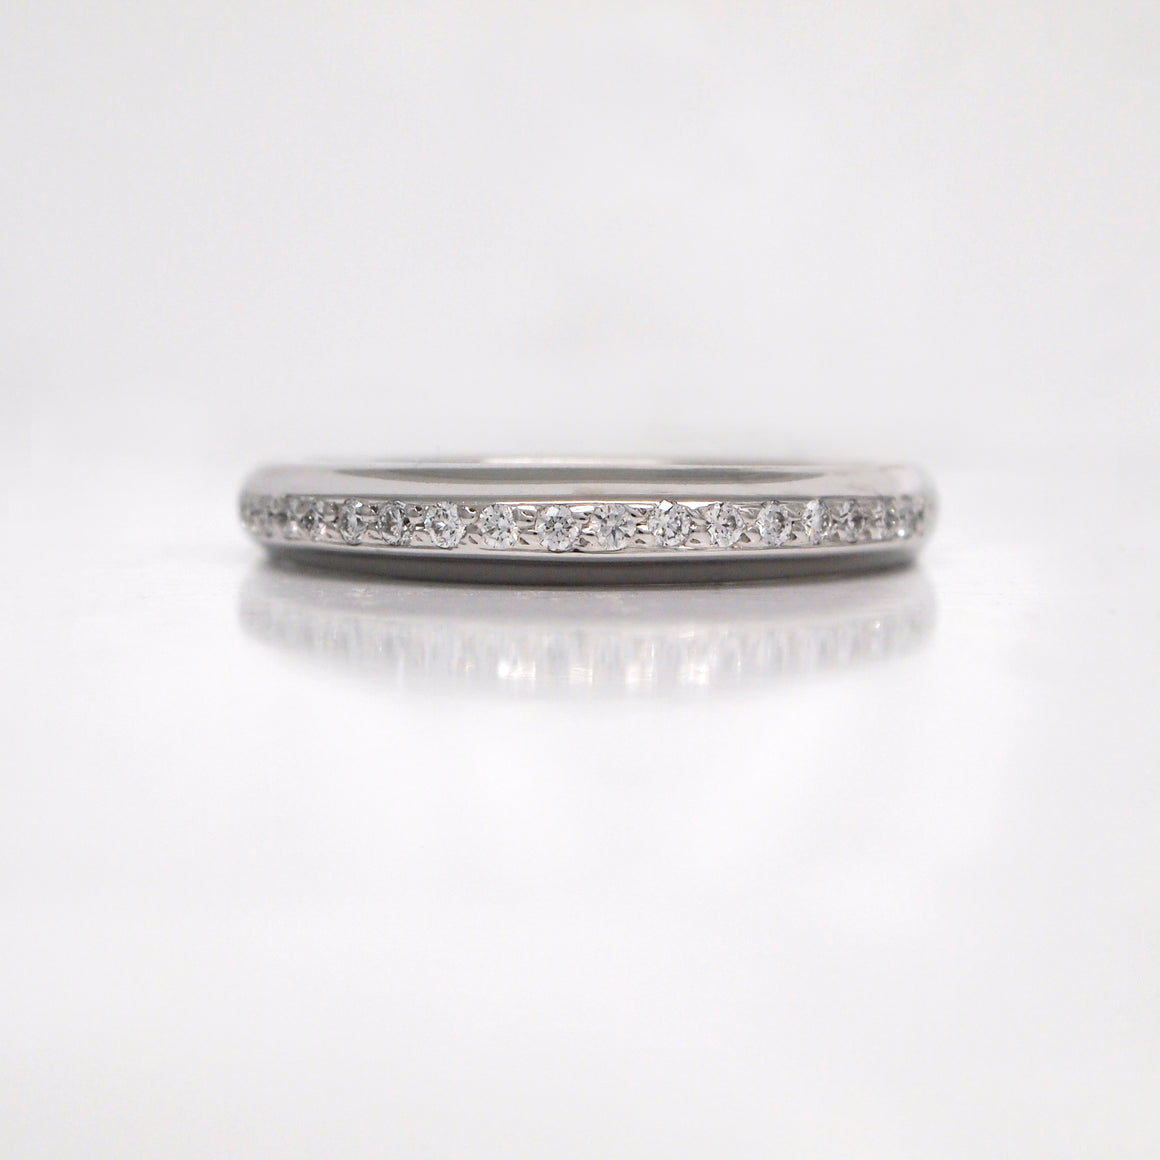 Lazare Kaplan 18K White Gold Diamond Wedding Band